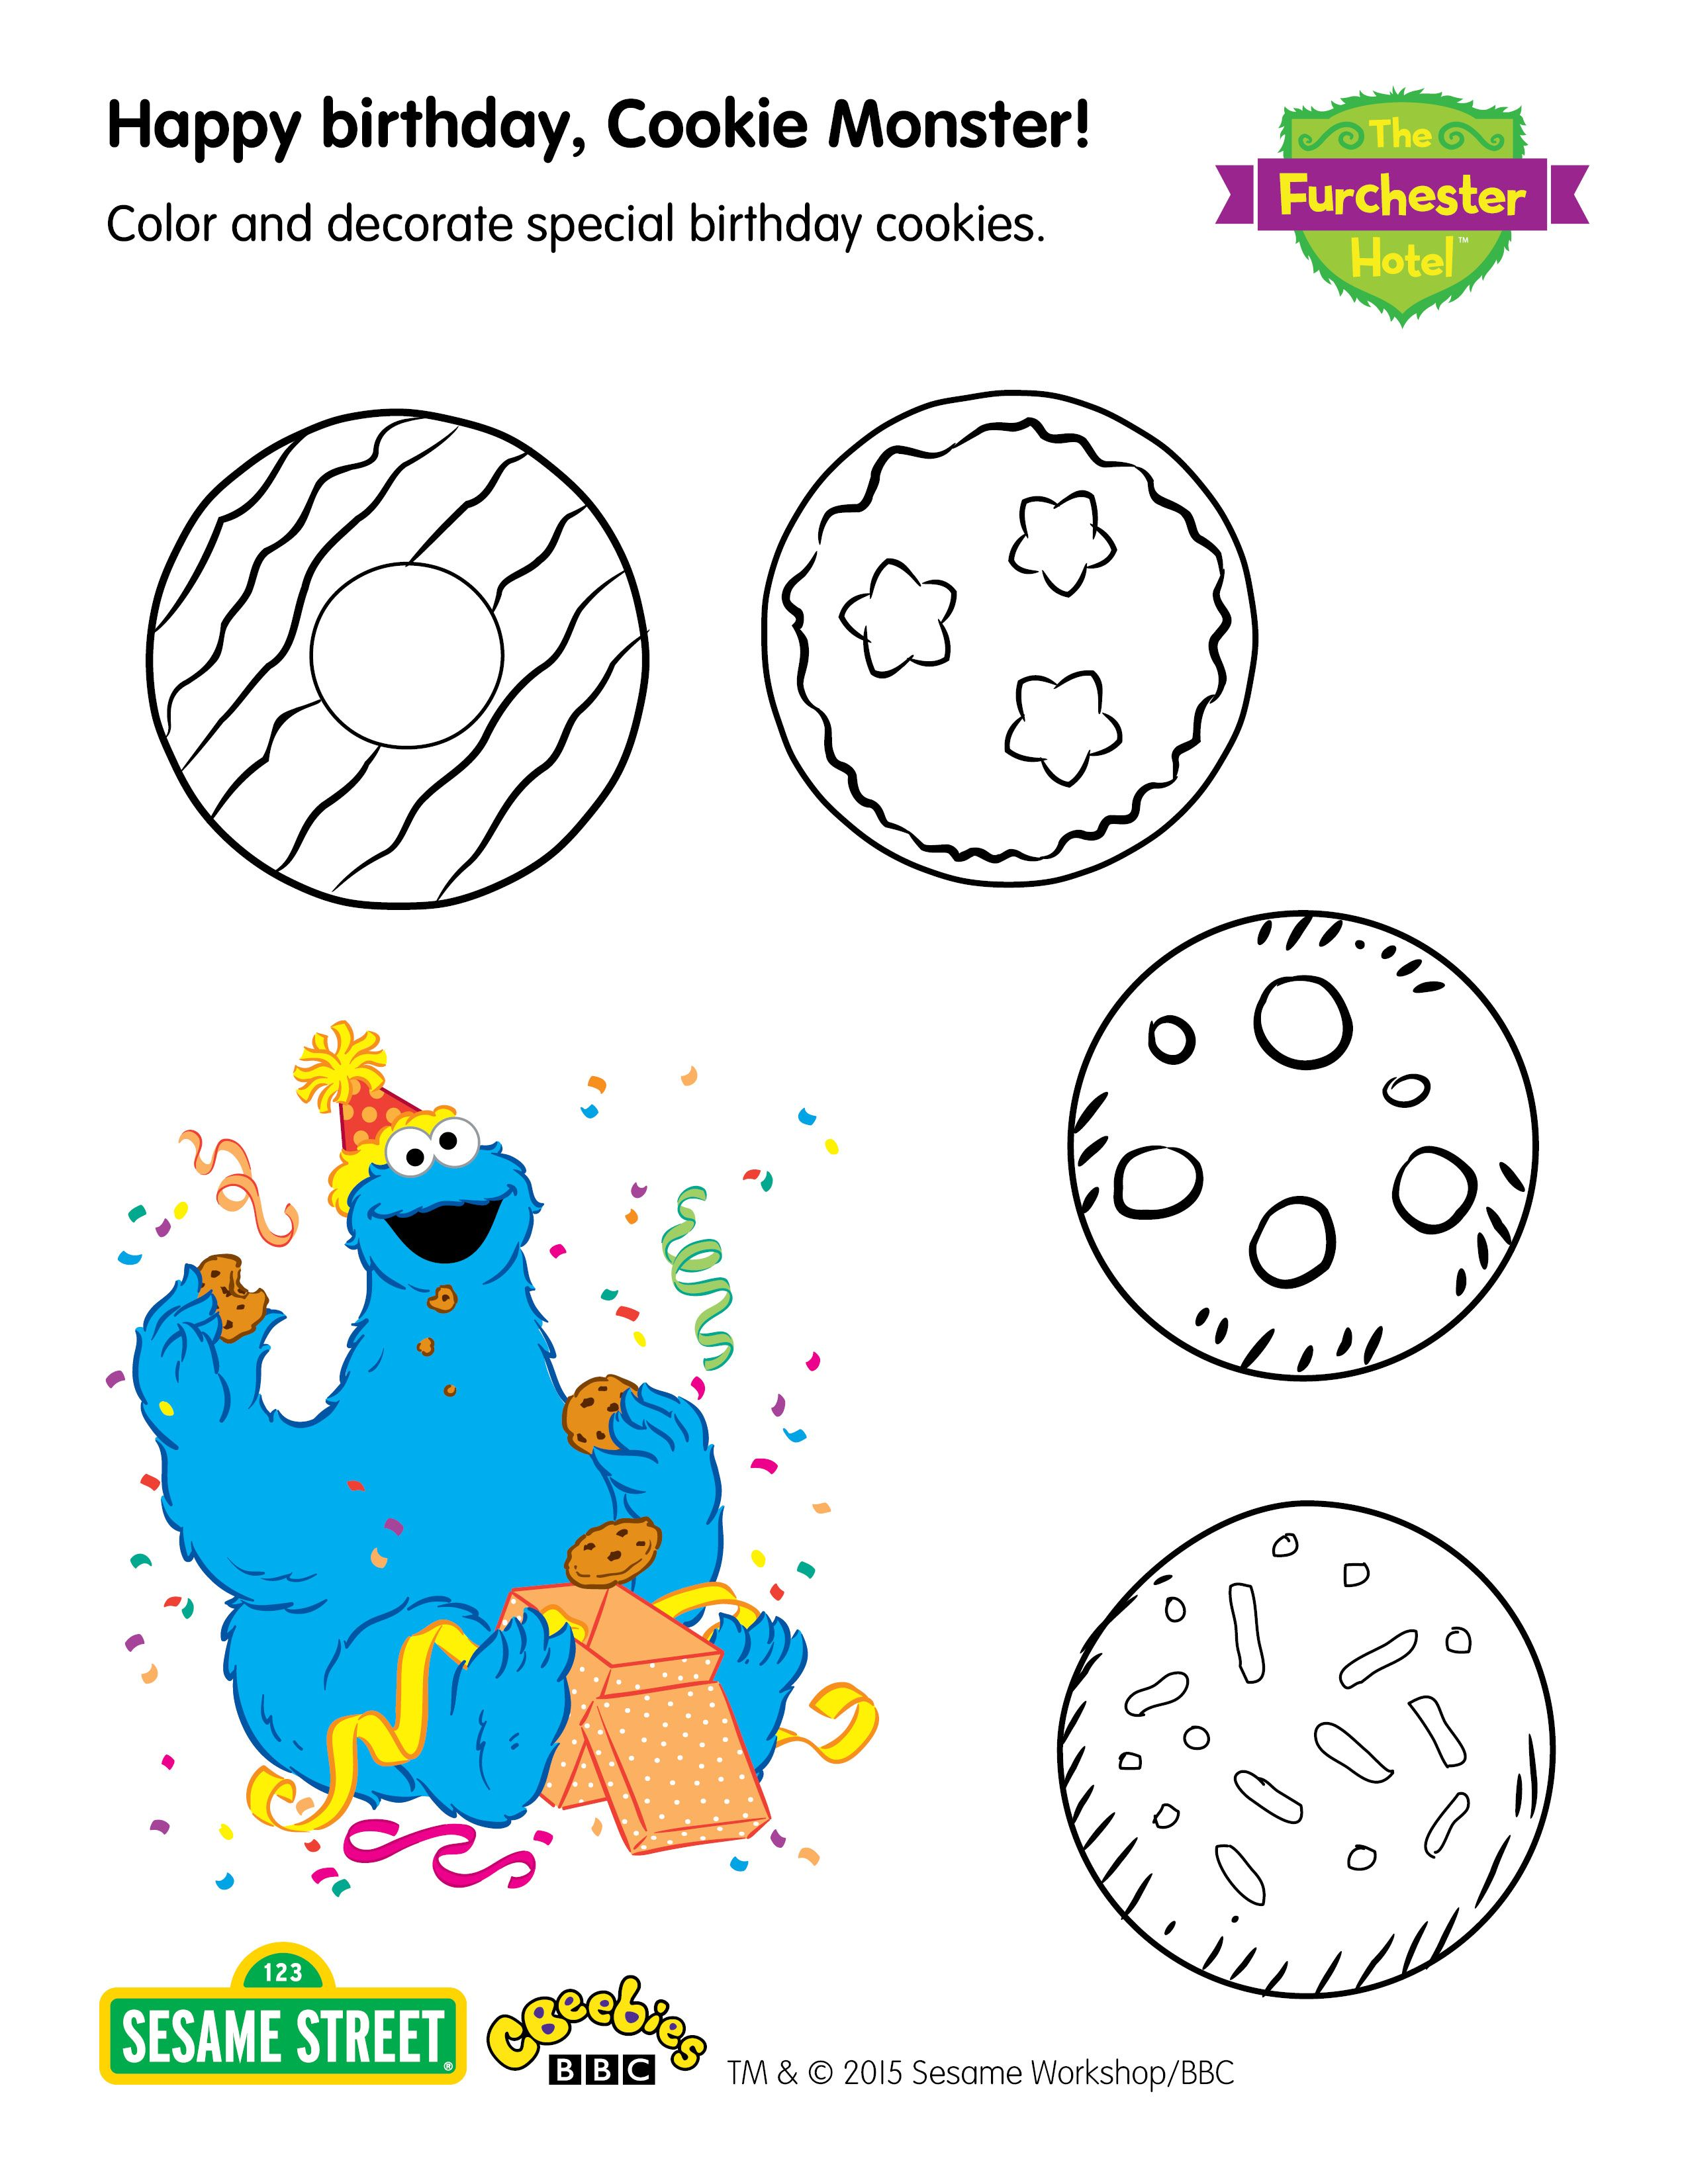 Get Your Kids To Colour In These Cool Cookies For The